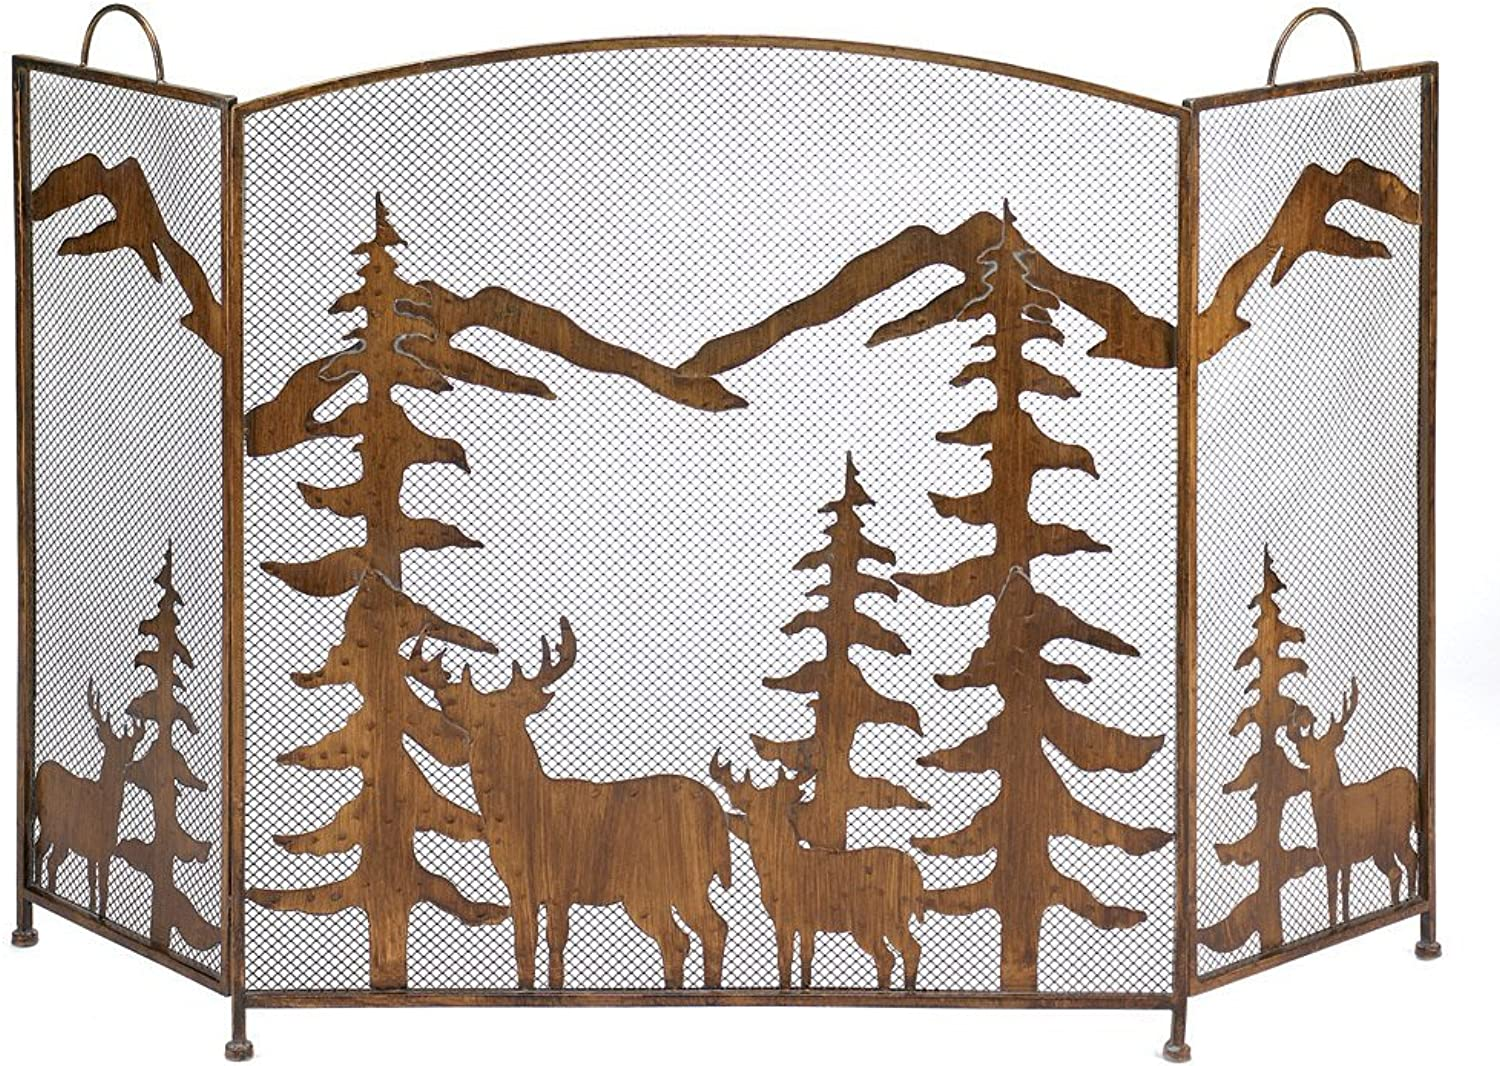 Rustic Forest Fireplace Screen (29.9  x 13  x 32.4)